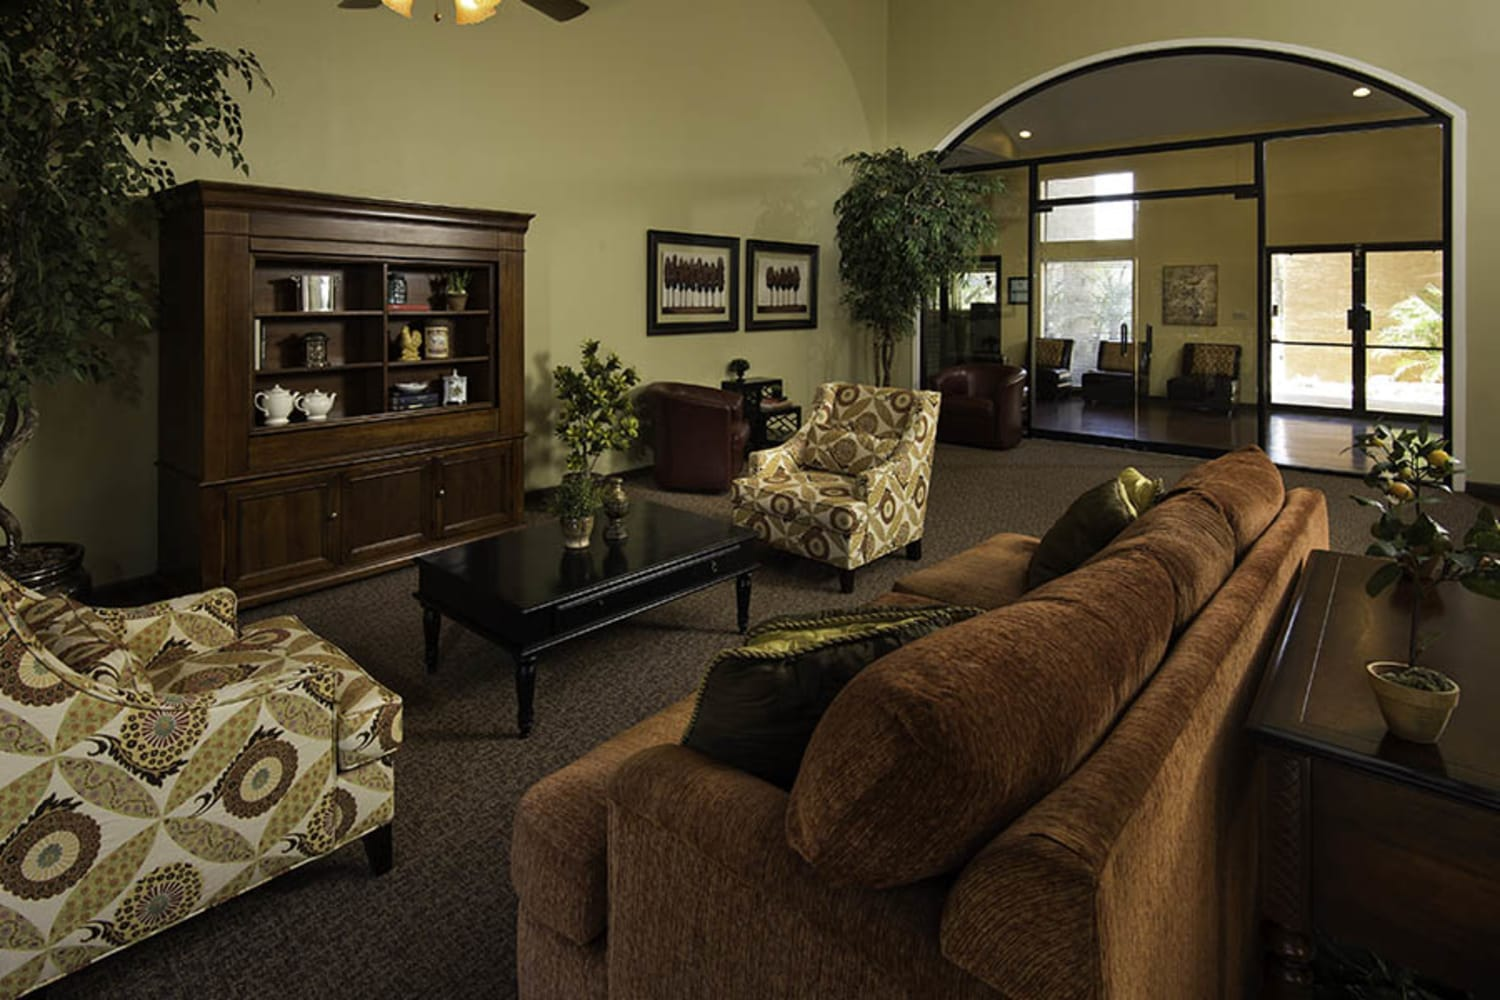 Waterford Place Apartments offer a roomy clubhouse in Mesa, Arizona